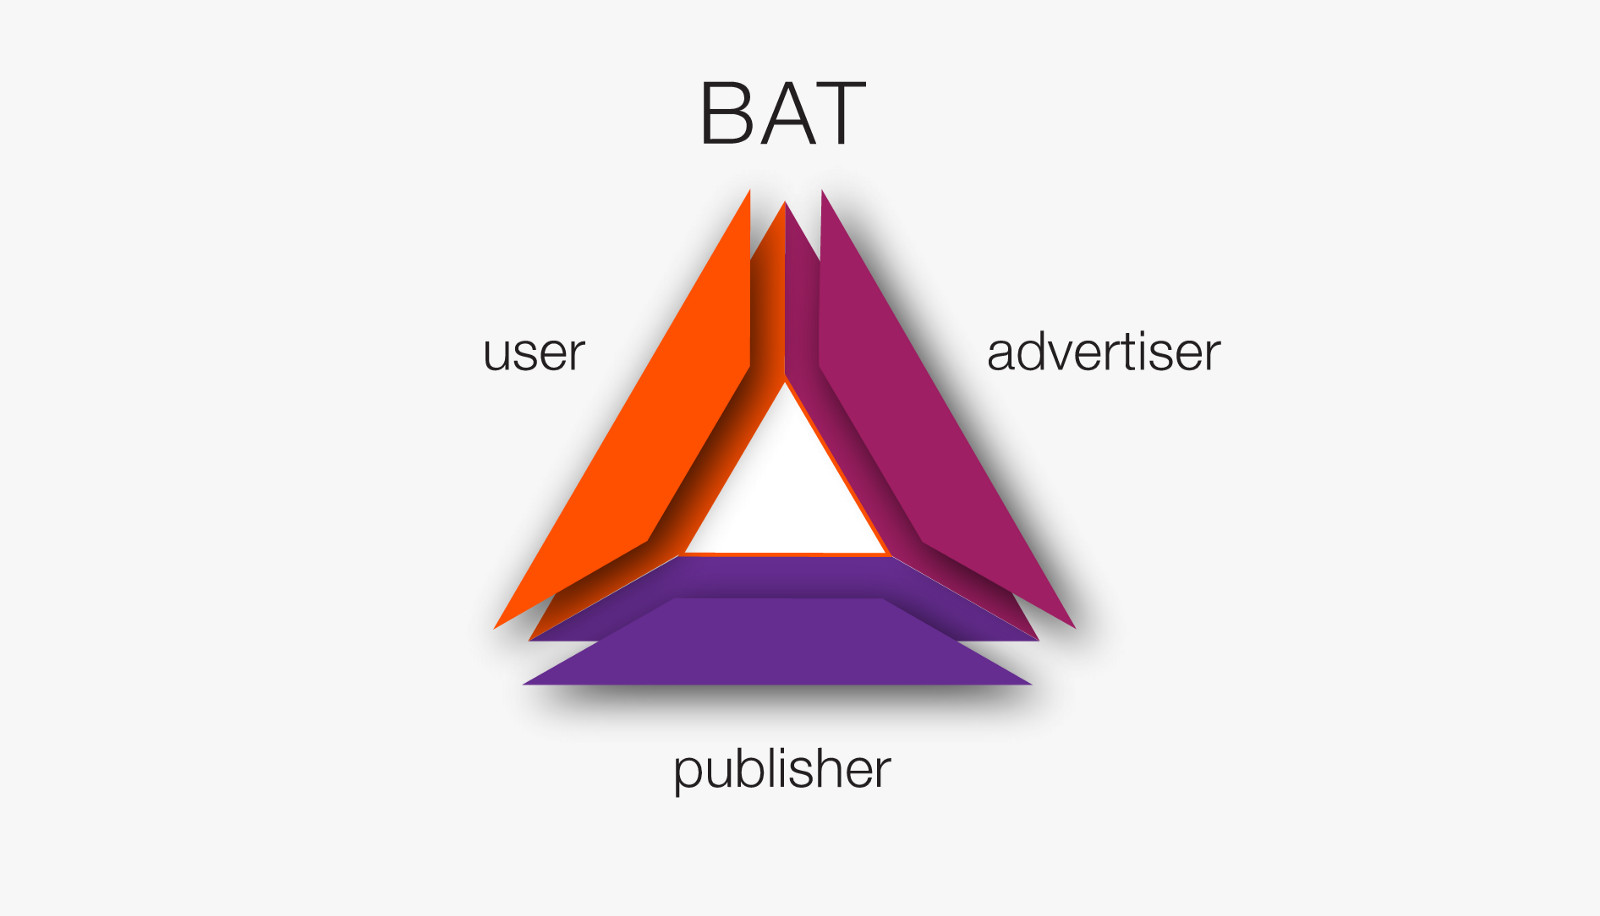 Brave Browser's BAT